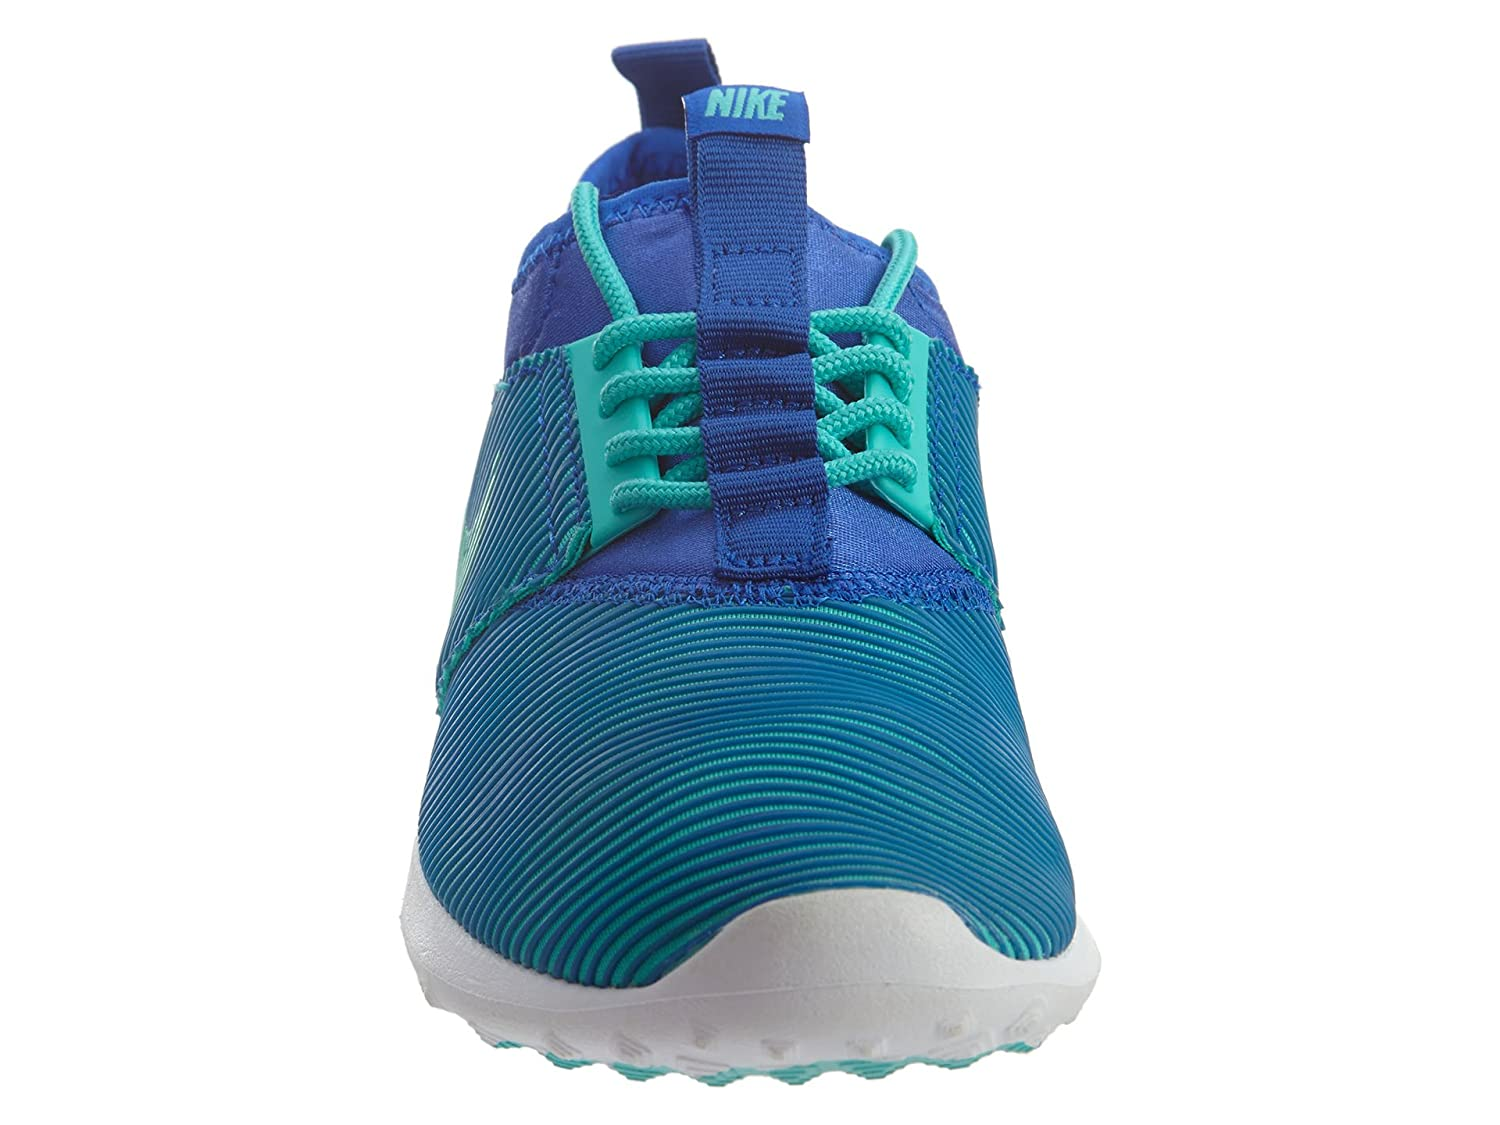 NIKE Women's Juvenate Running Shoe B01D0IH1BY 6 B(M) US|Racer Blue/white/hyper Jade